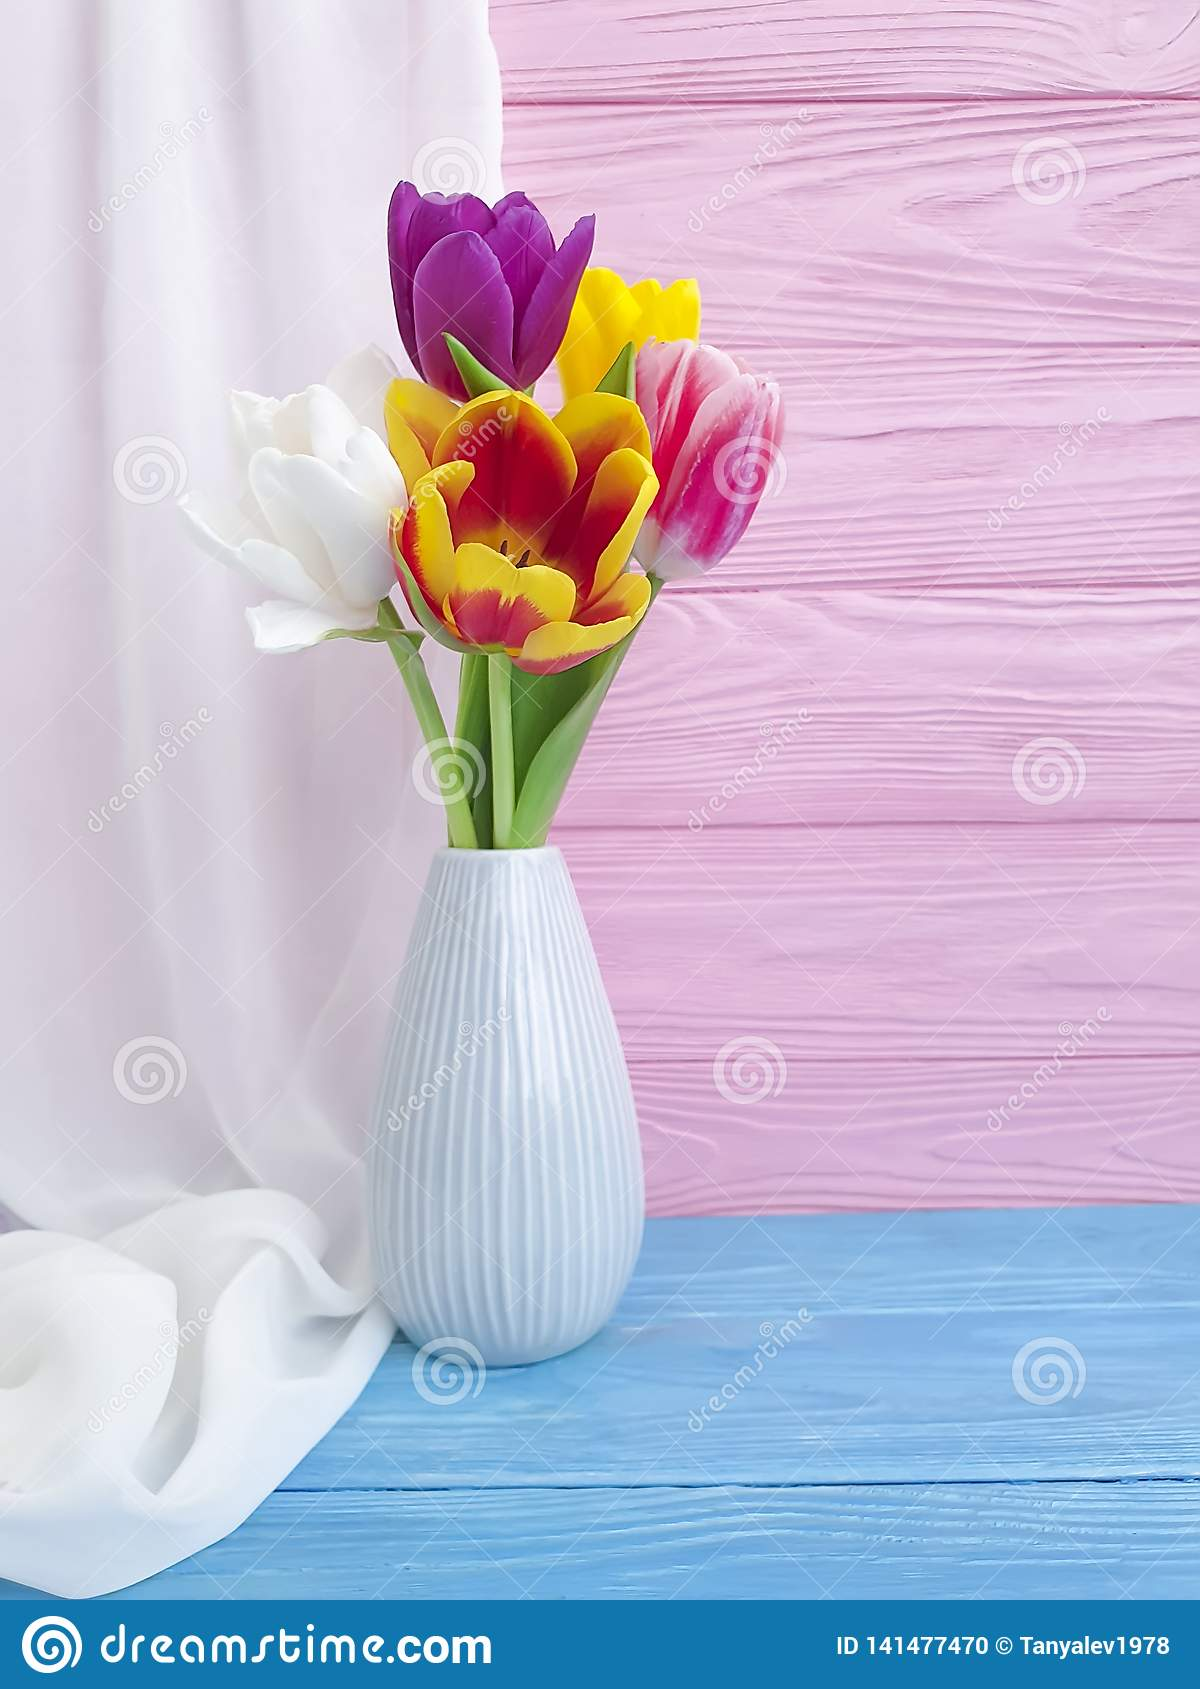 Vase bouquet of tulips colorful romantic elegance on wooden background